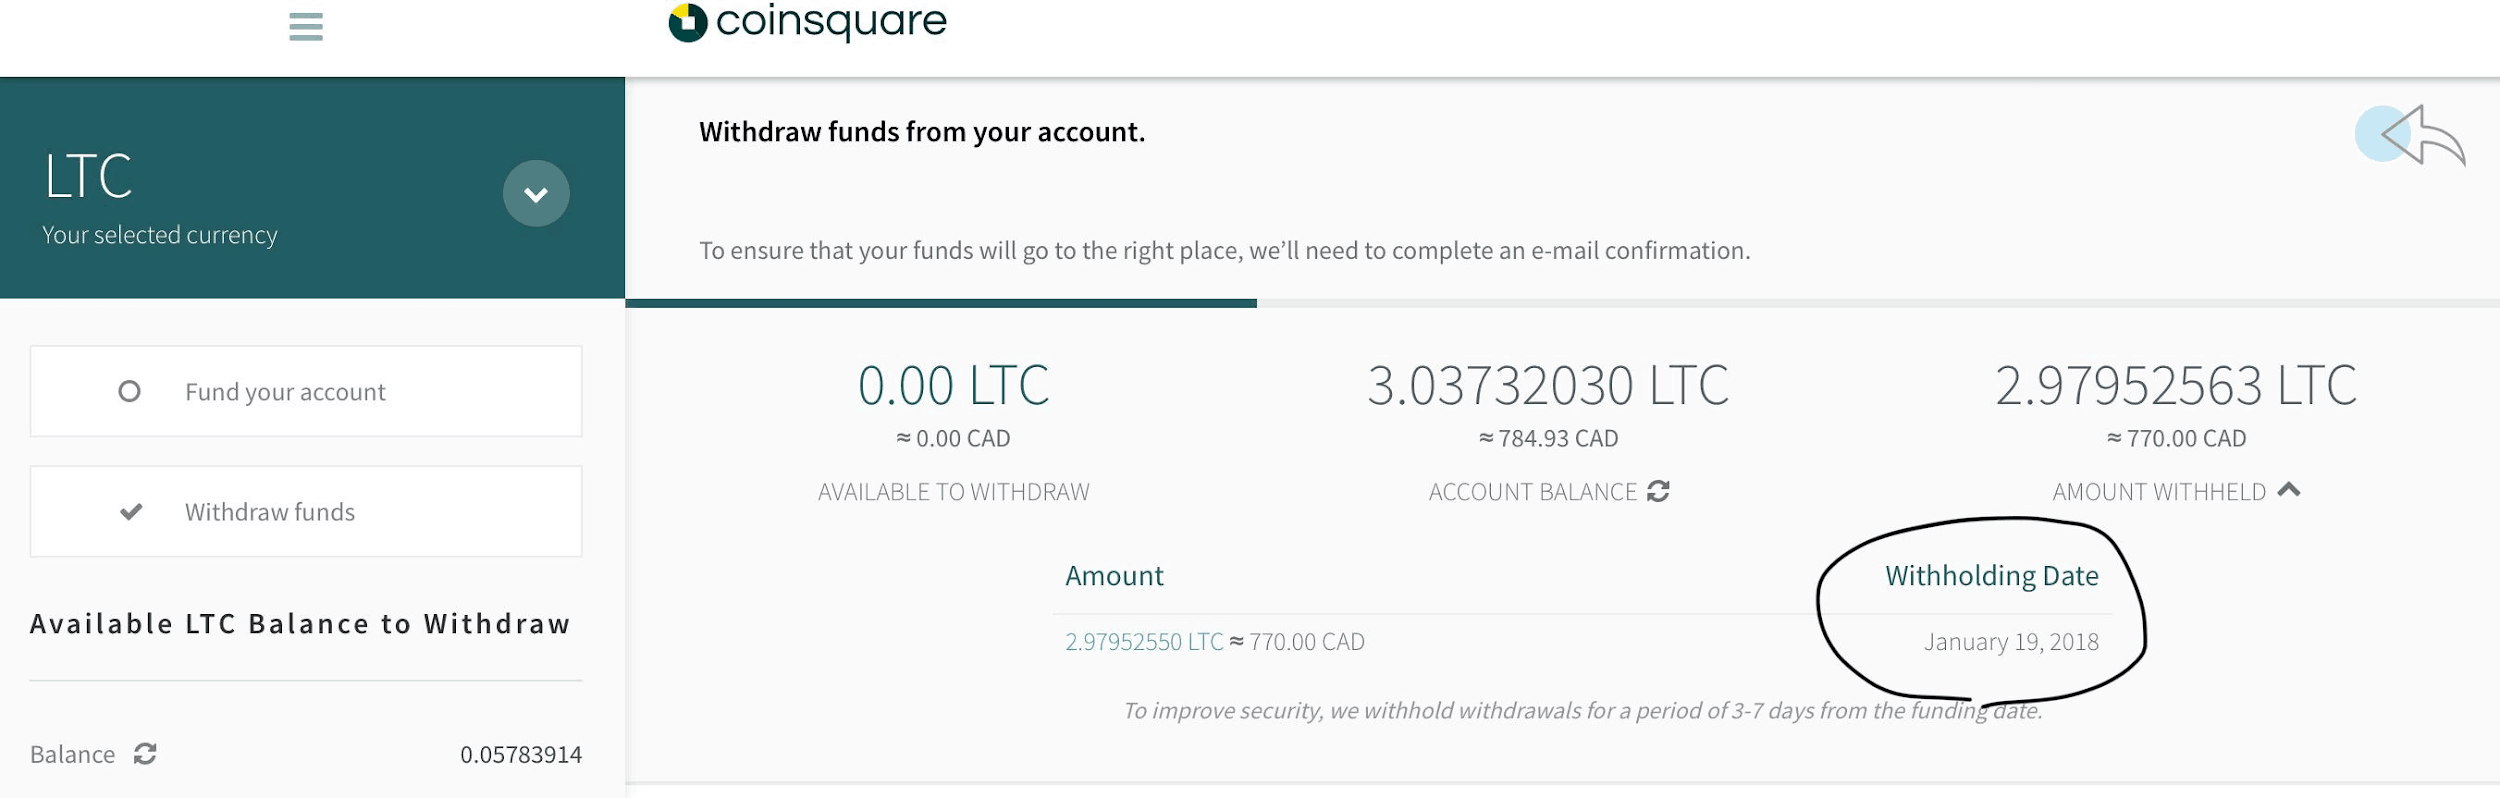 Coinsquare - withdraw funds